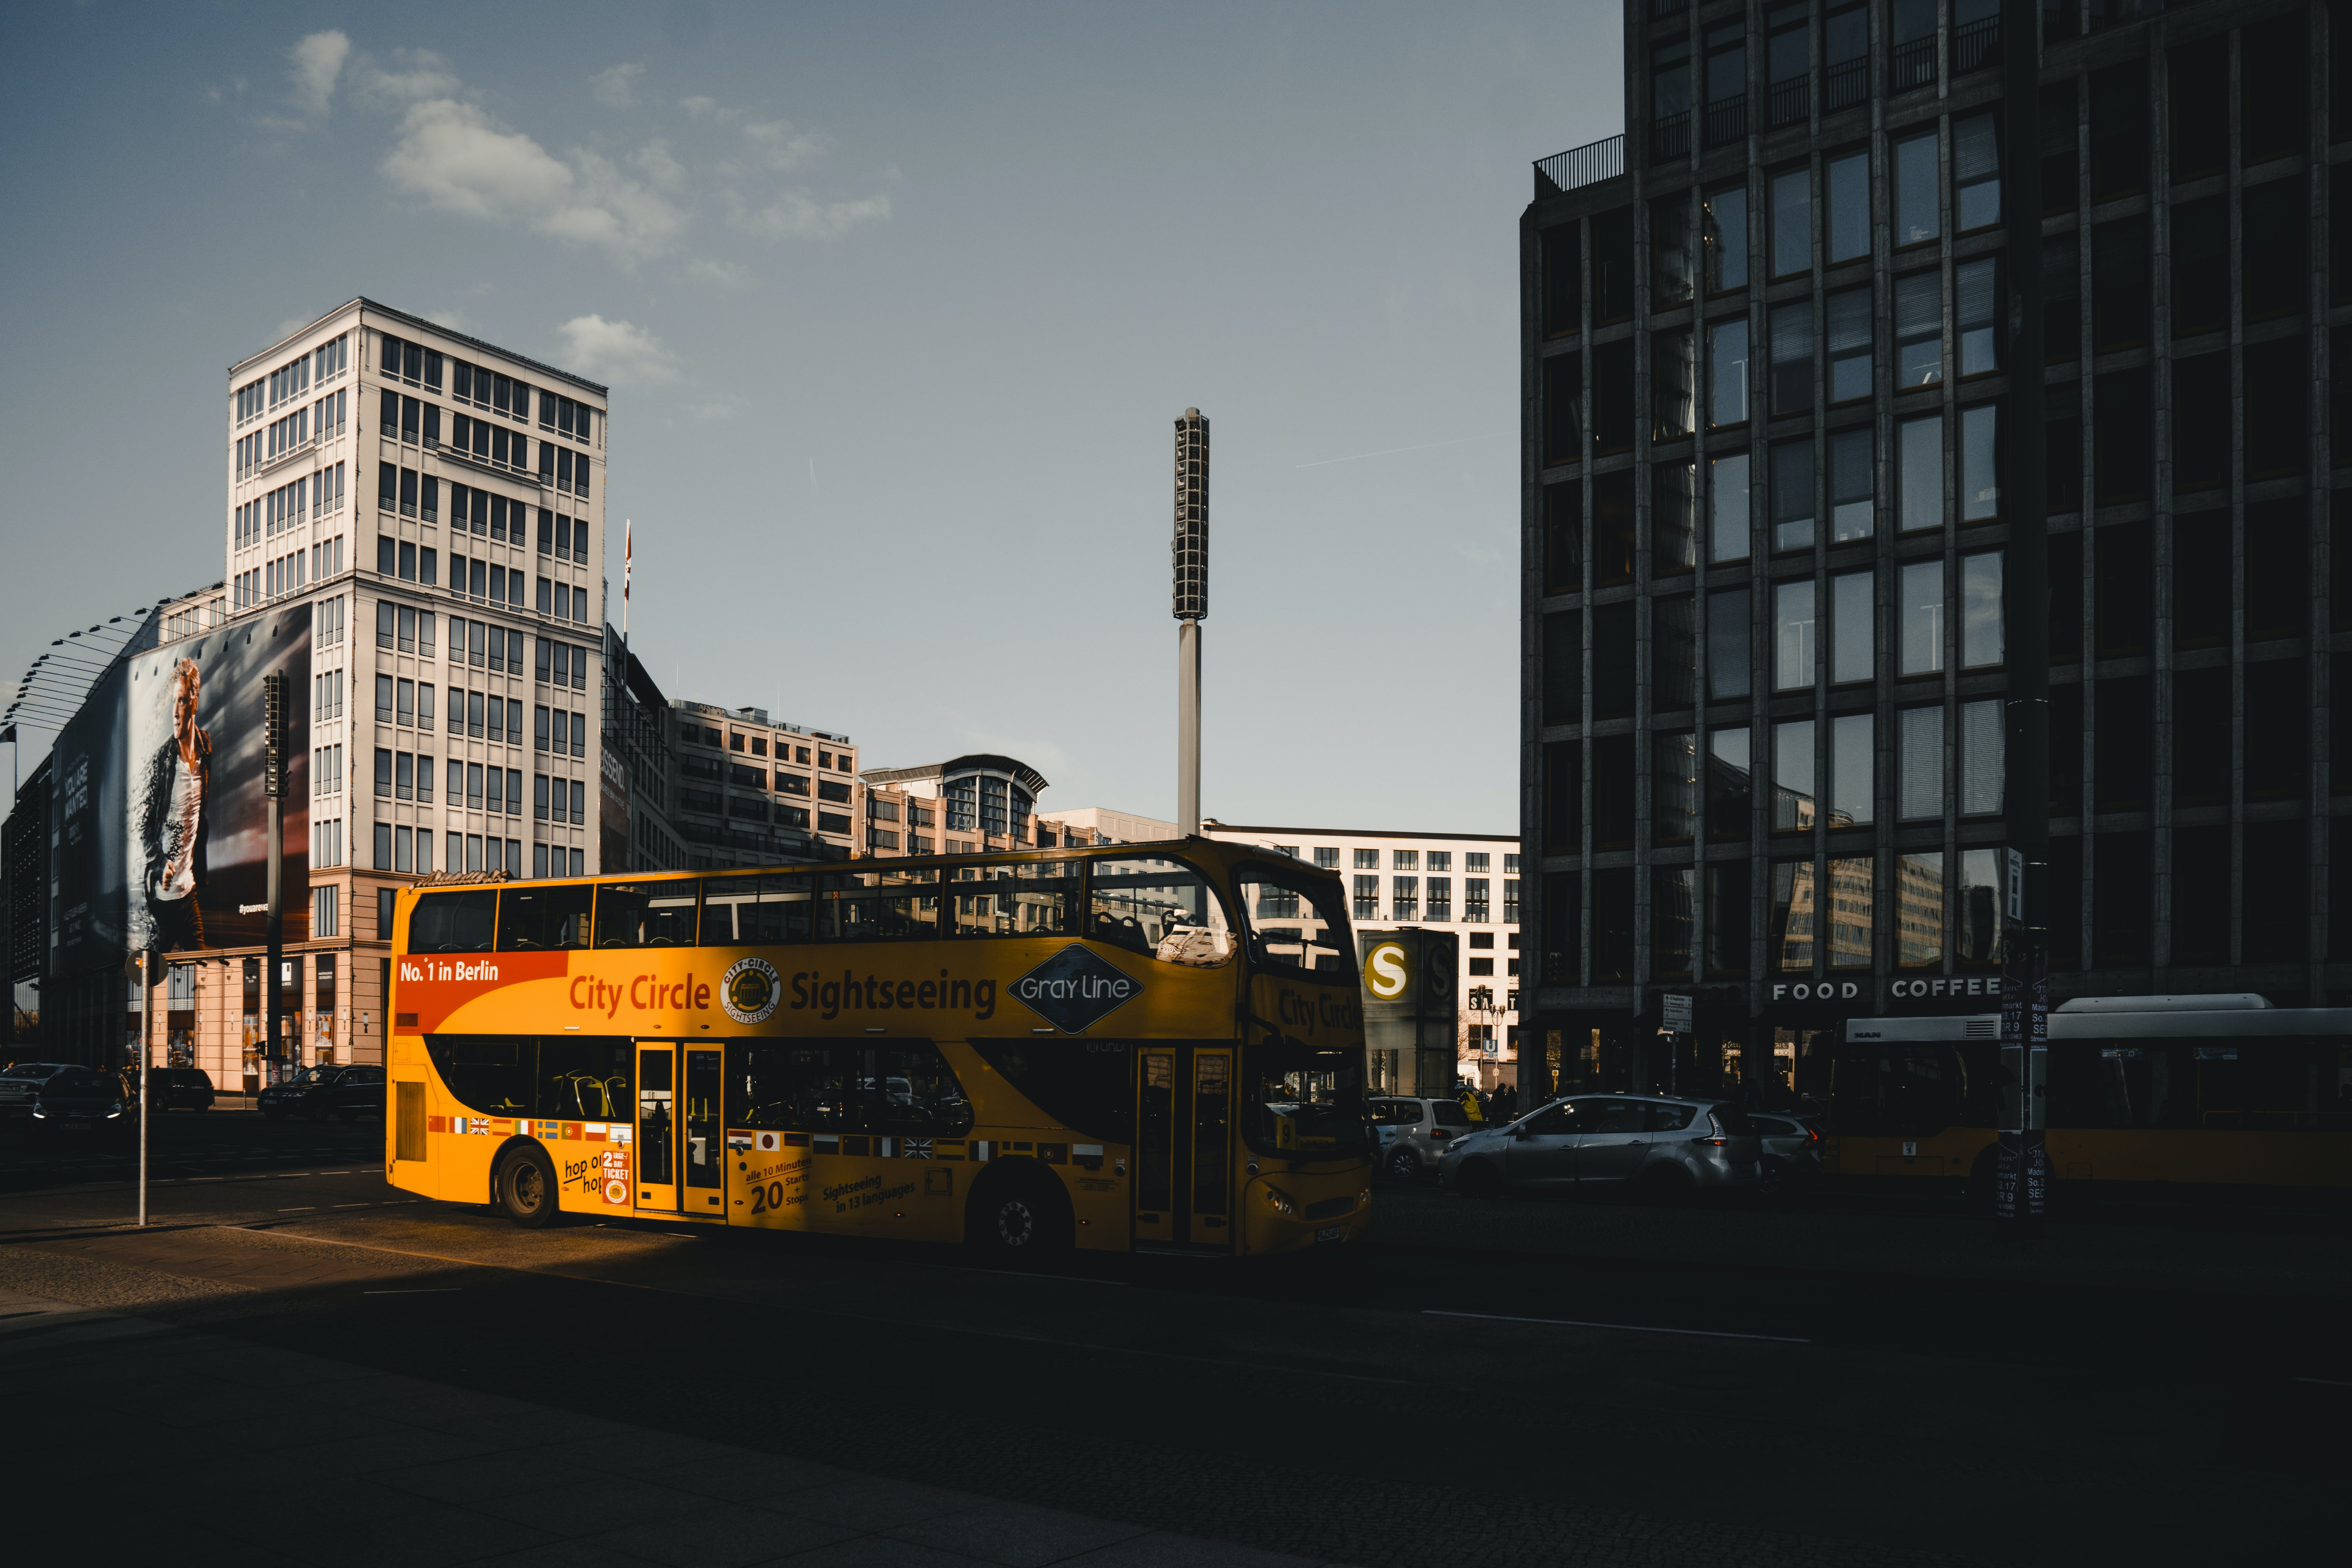 Yellow Bus Parked Near Building